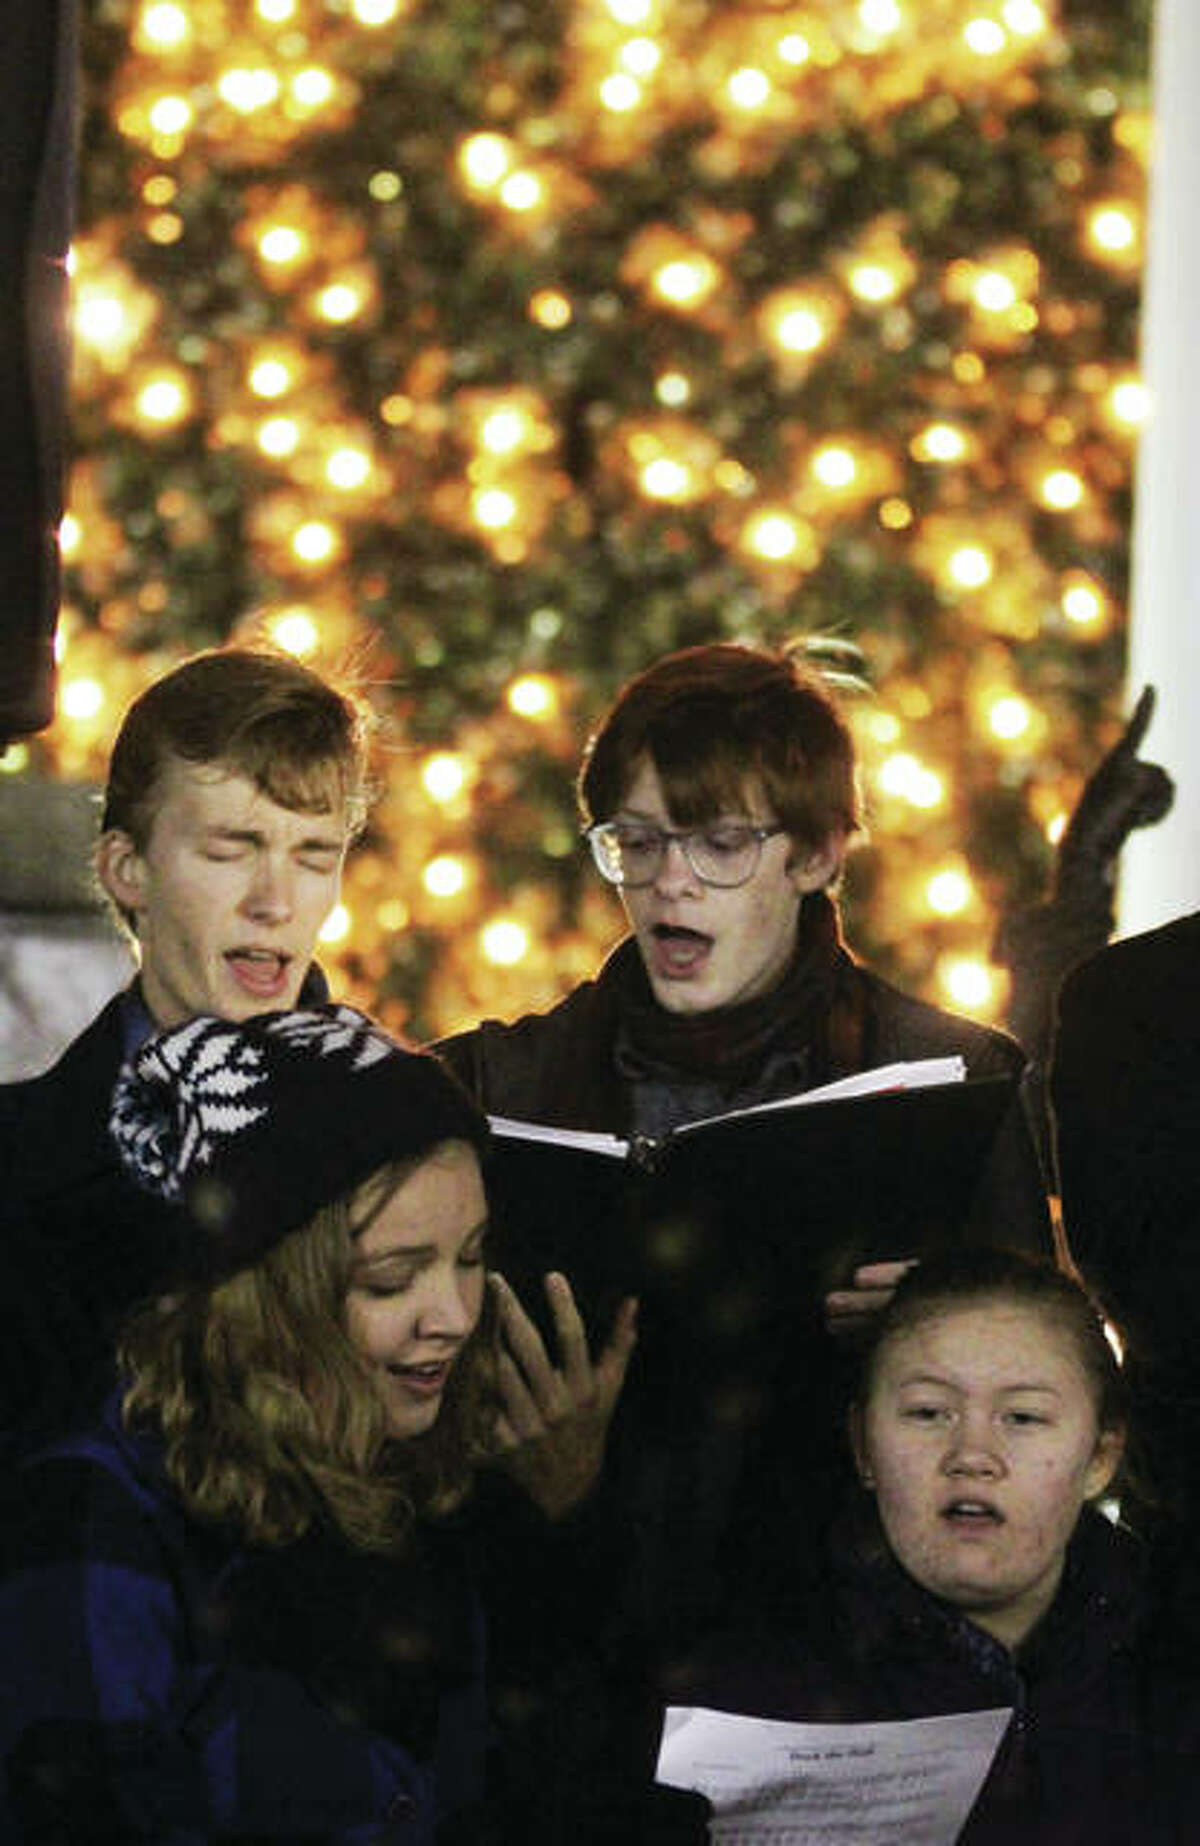 Alton High School Chamber Singers members Kevin Neace, clockwise from top left, Austin Turnbull, Dominique Reinier and Audrey Neace perform Christmas carols during the 23rd annual Christmas Tree Lighting in Lincoln-Douglas Square in downtown Alton. The ceremony drew about 250 people, and is sponsored by Alton Main Street.